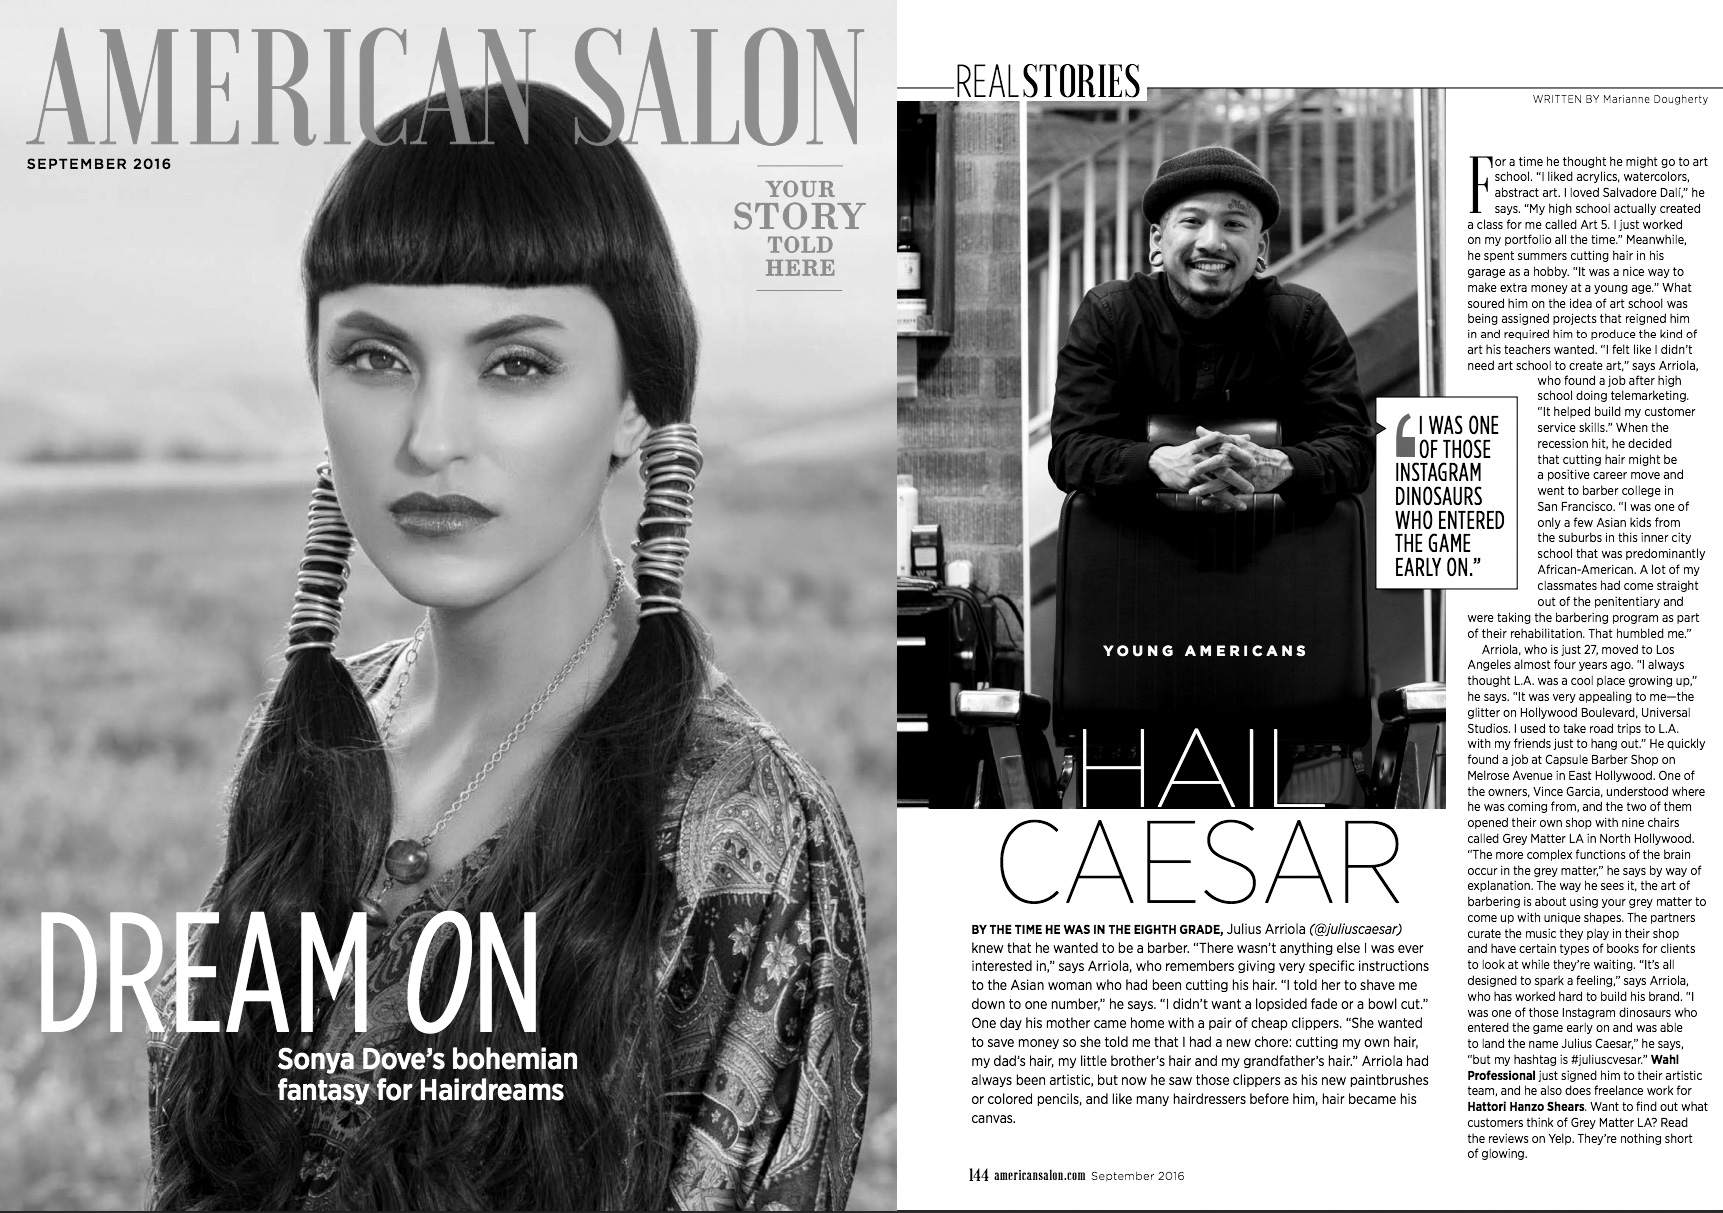 AMERICAN SALON, SEPTEMBER 2016